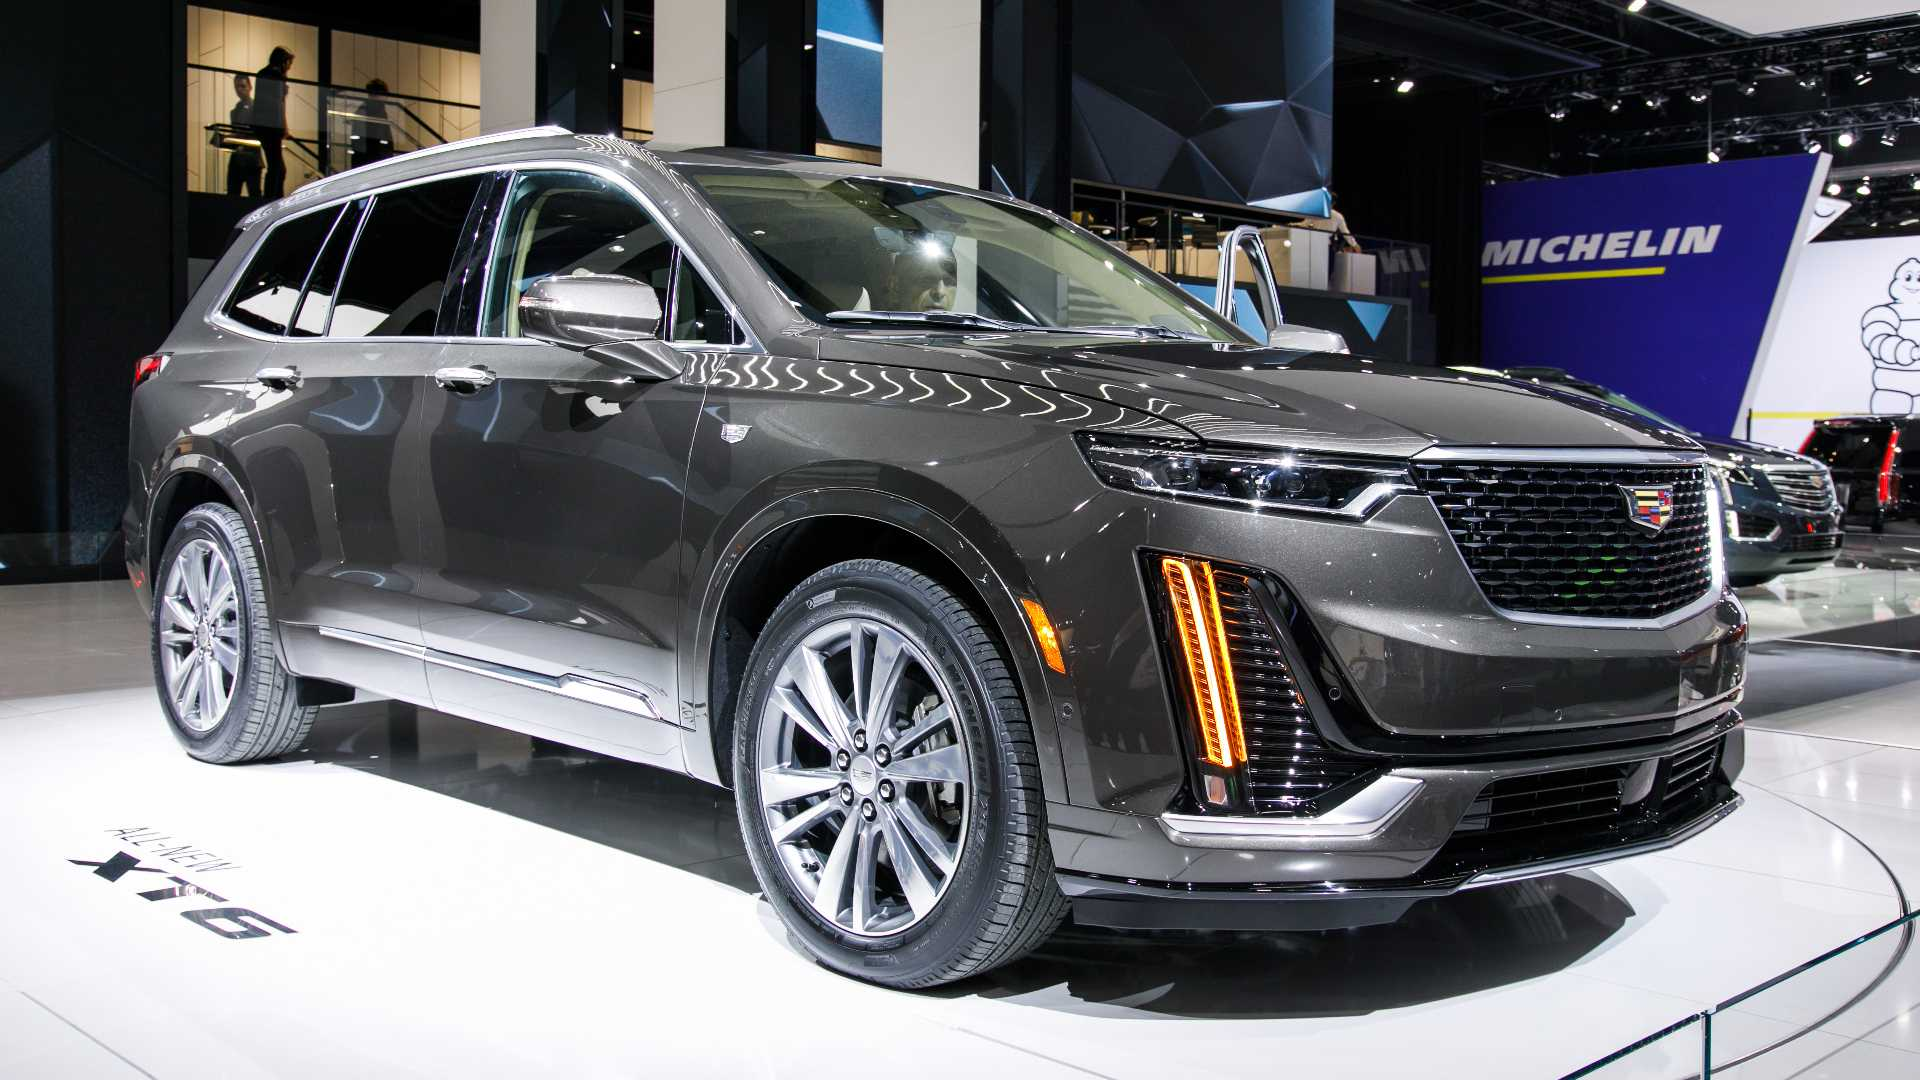 93 Best Review 2020 Cadillac Xt6 Gas Mileage Performance by 2020 Cadillac Xt6 Gas Mileage